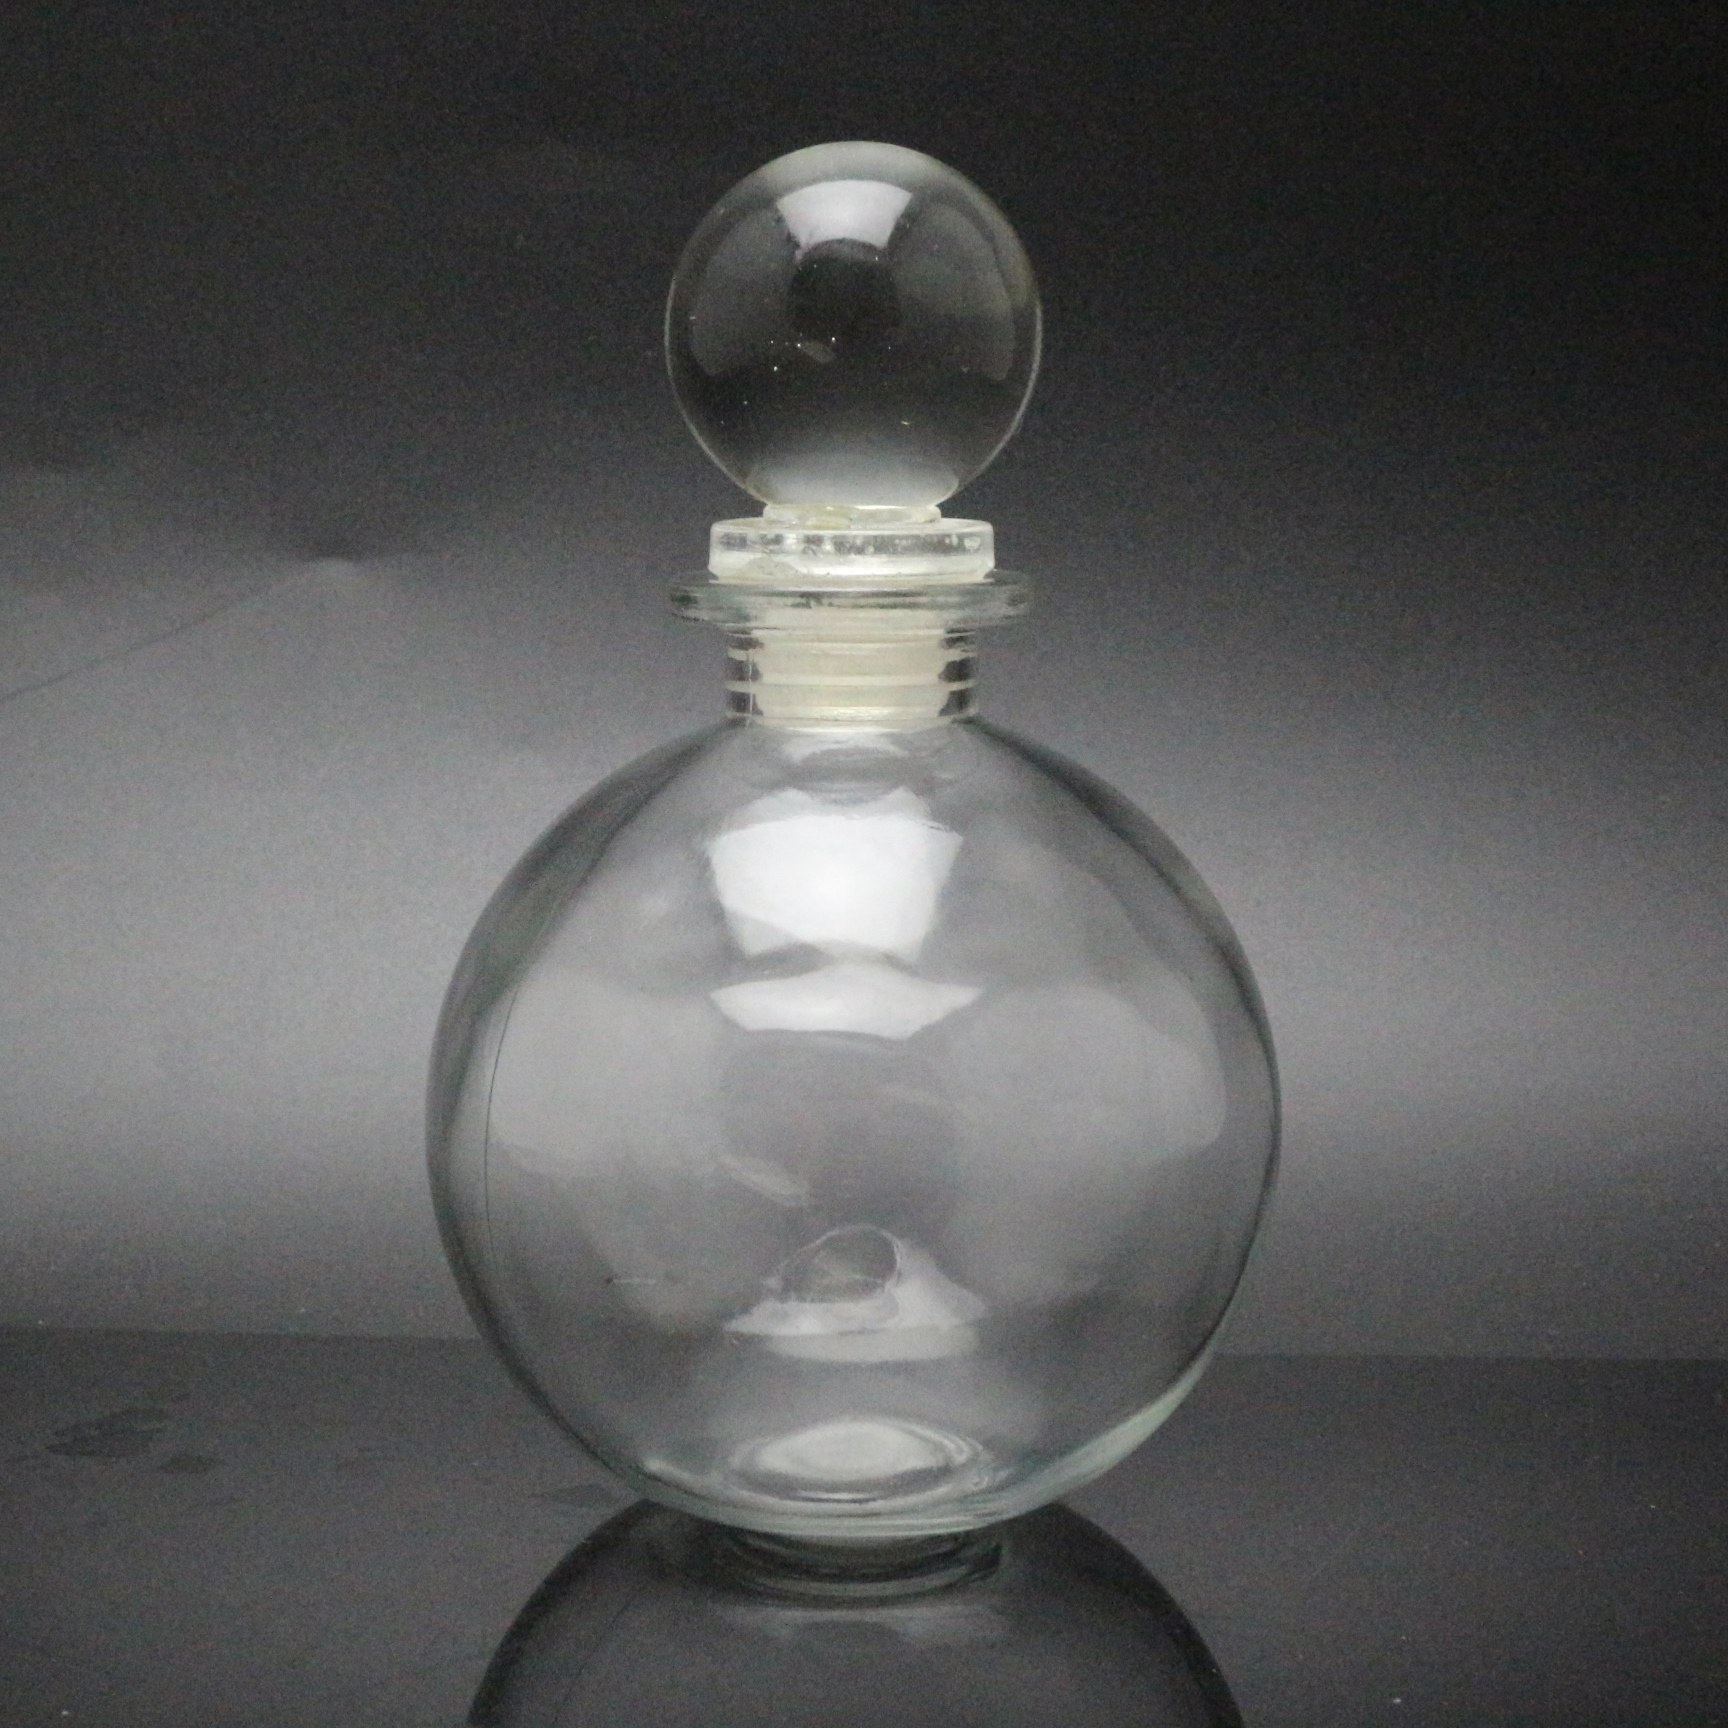 Nakpunar round bottle for oils witch spells wedding favors bath bubbles Spherical Clear Glass Bottle 8.5 Oz Cork ball bottle